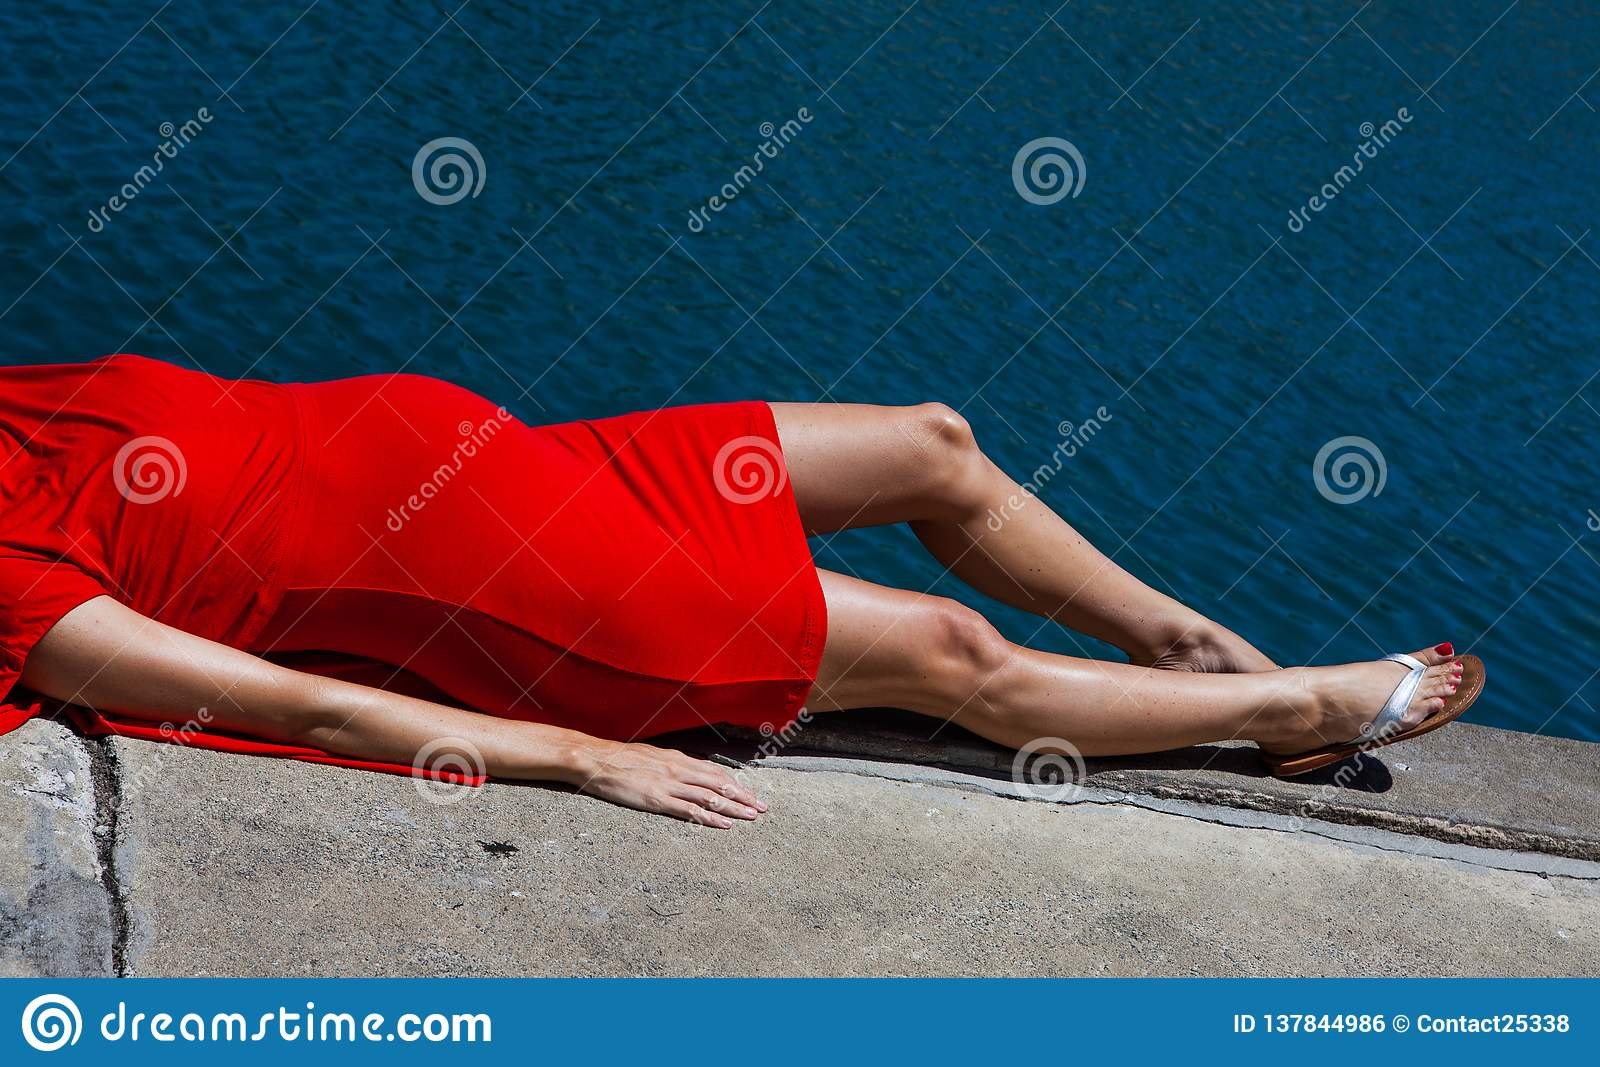 A Slim Petite Pregnant Ladies Belly. Lying Down In Red